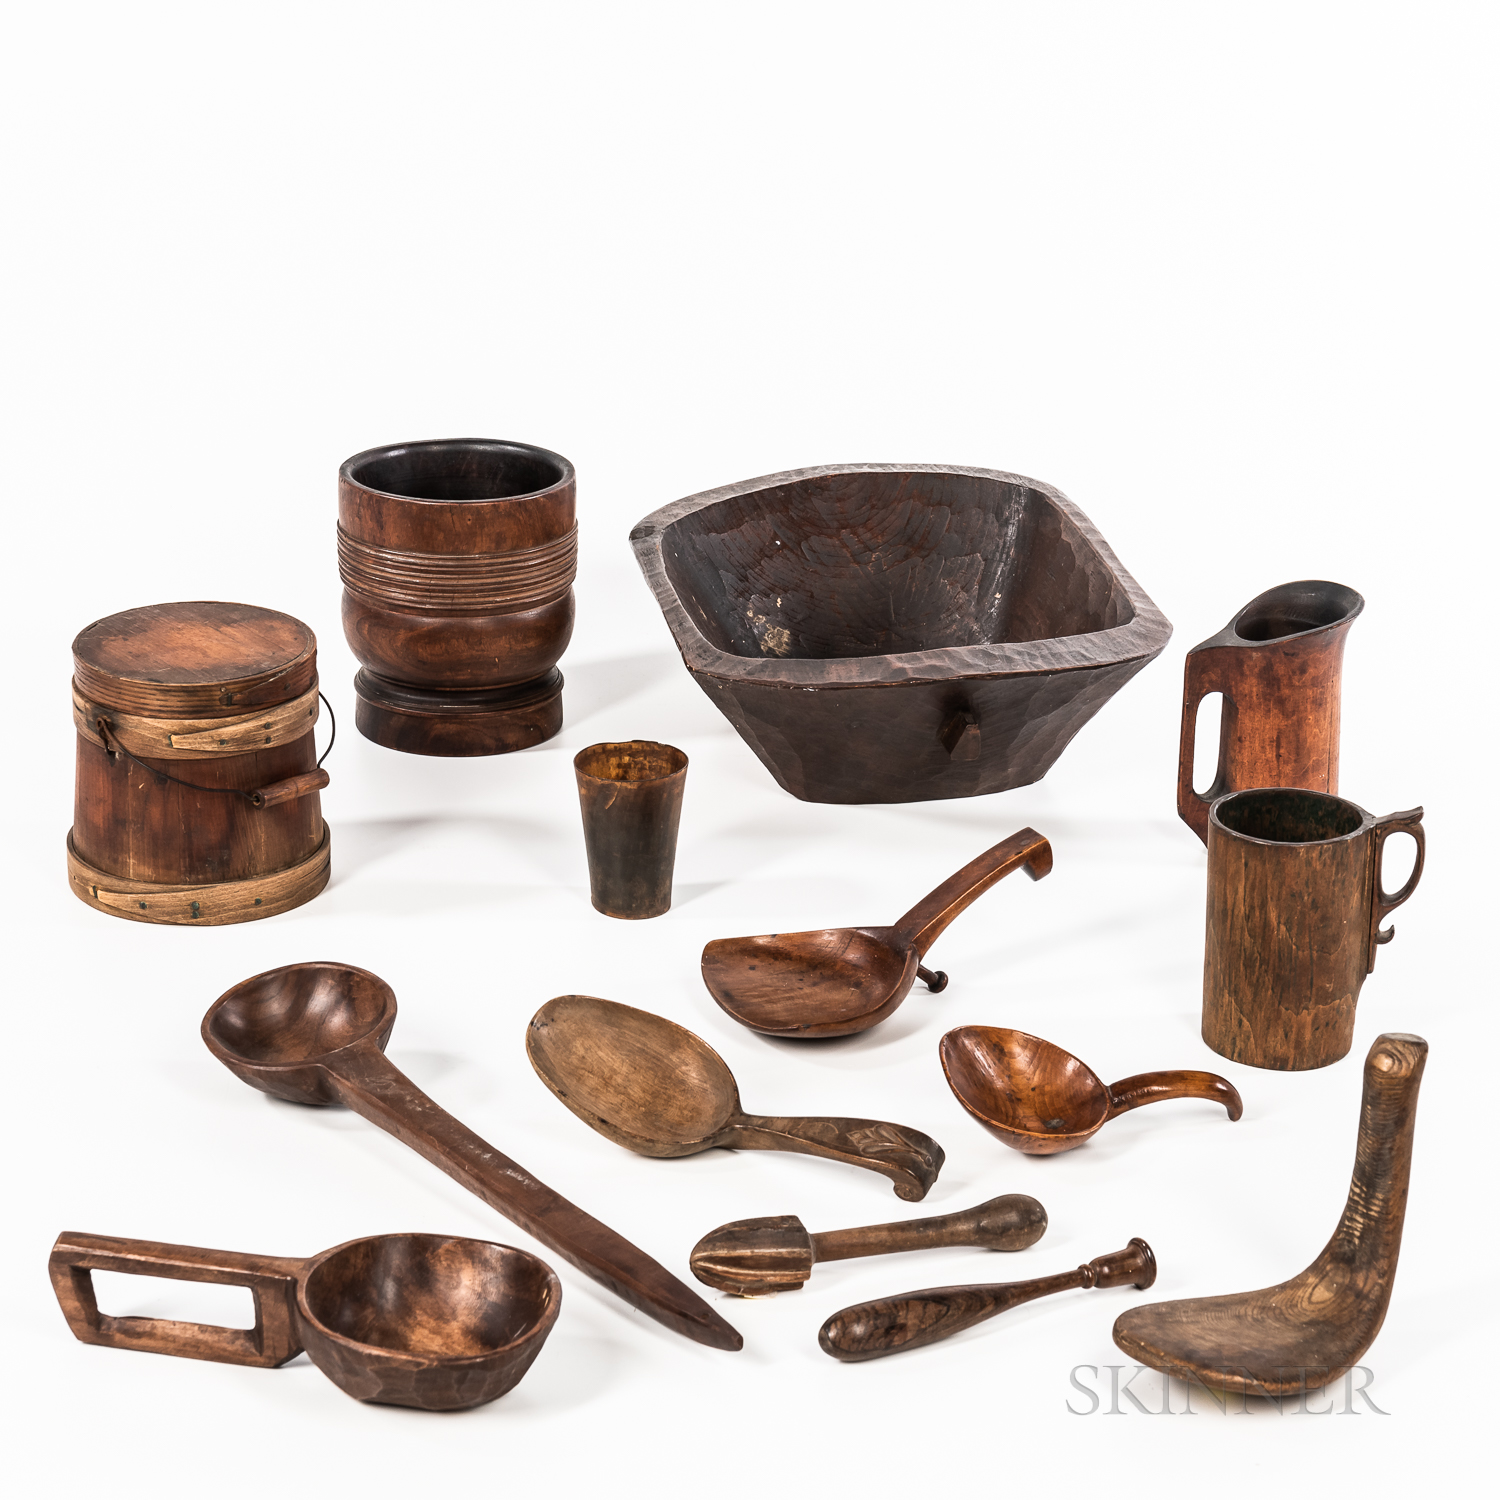 Group of Decorative Wooden Items